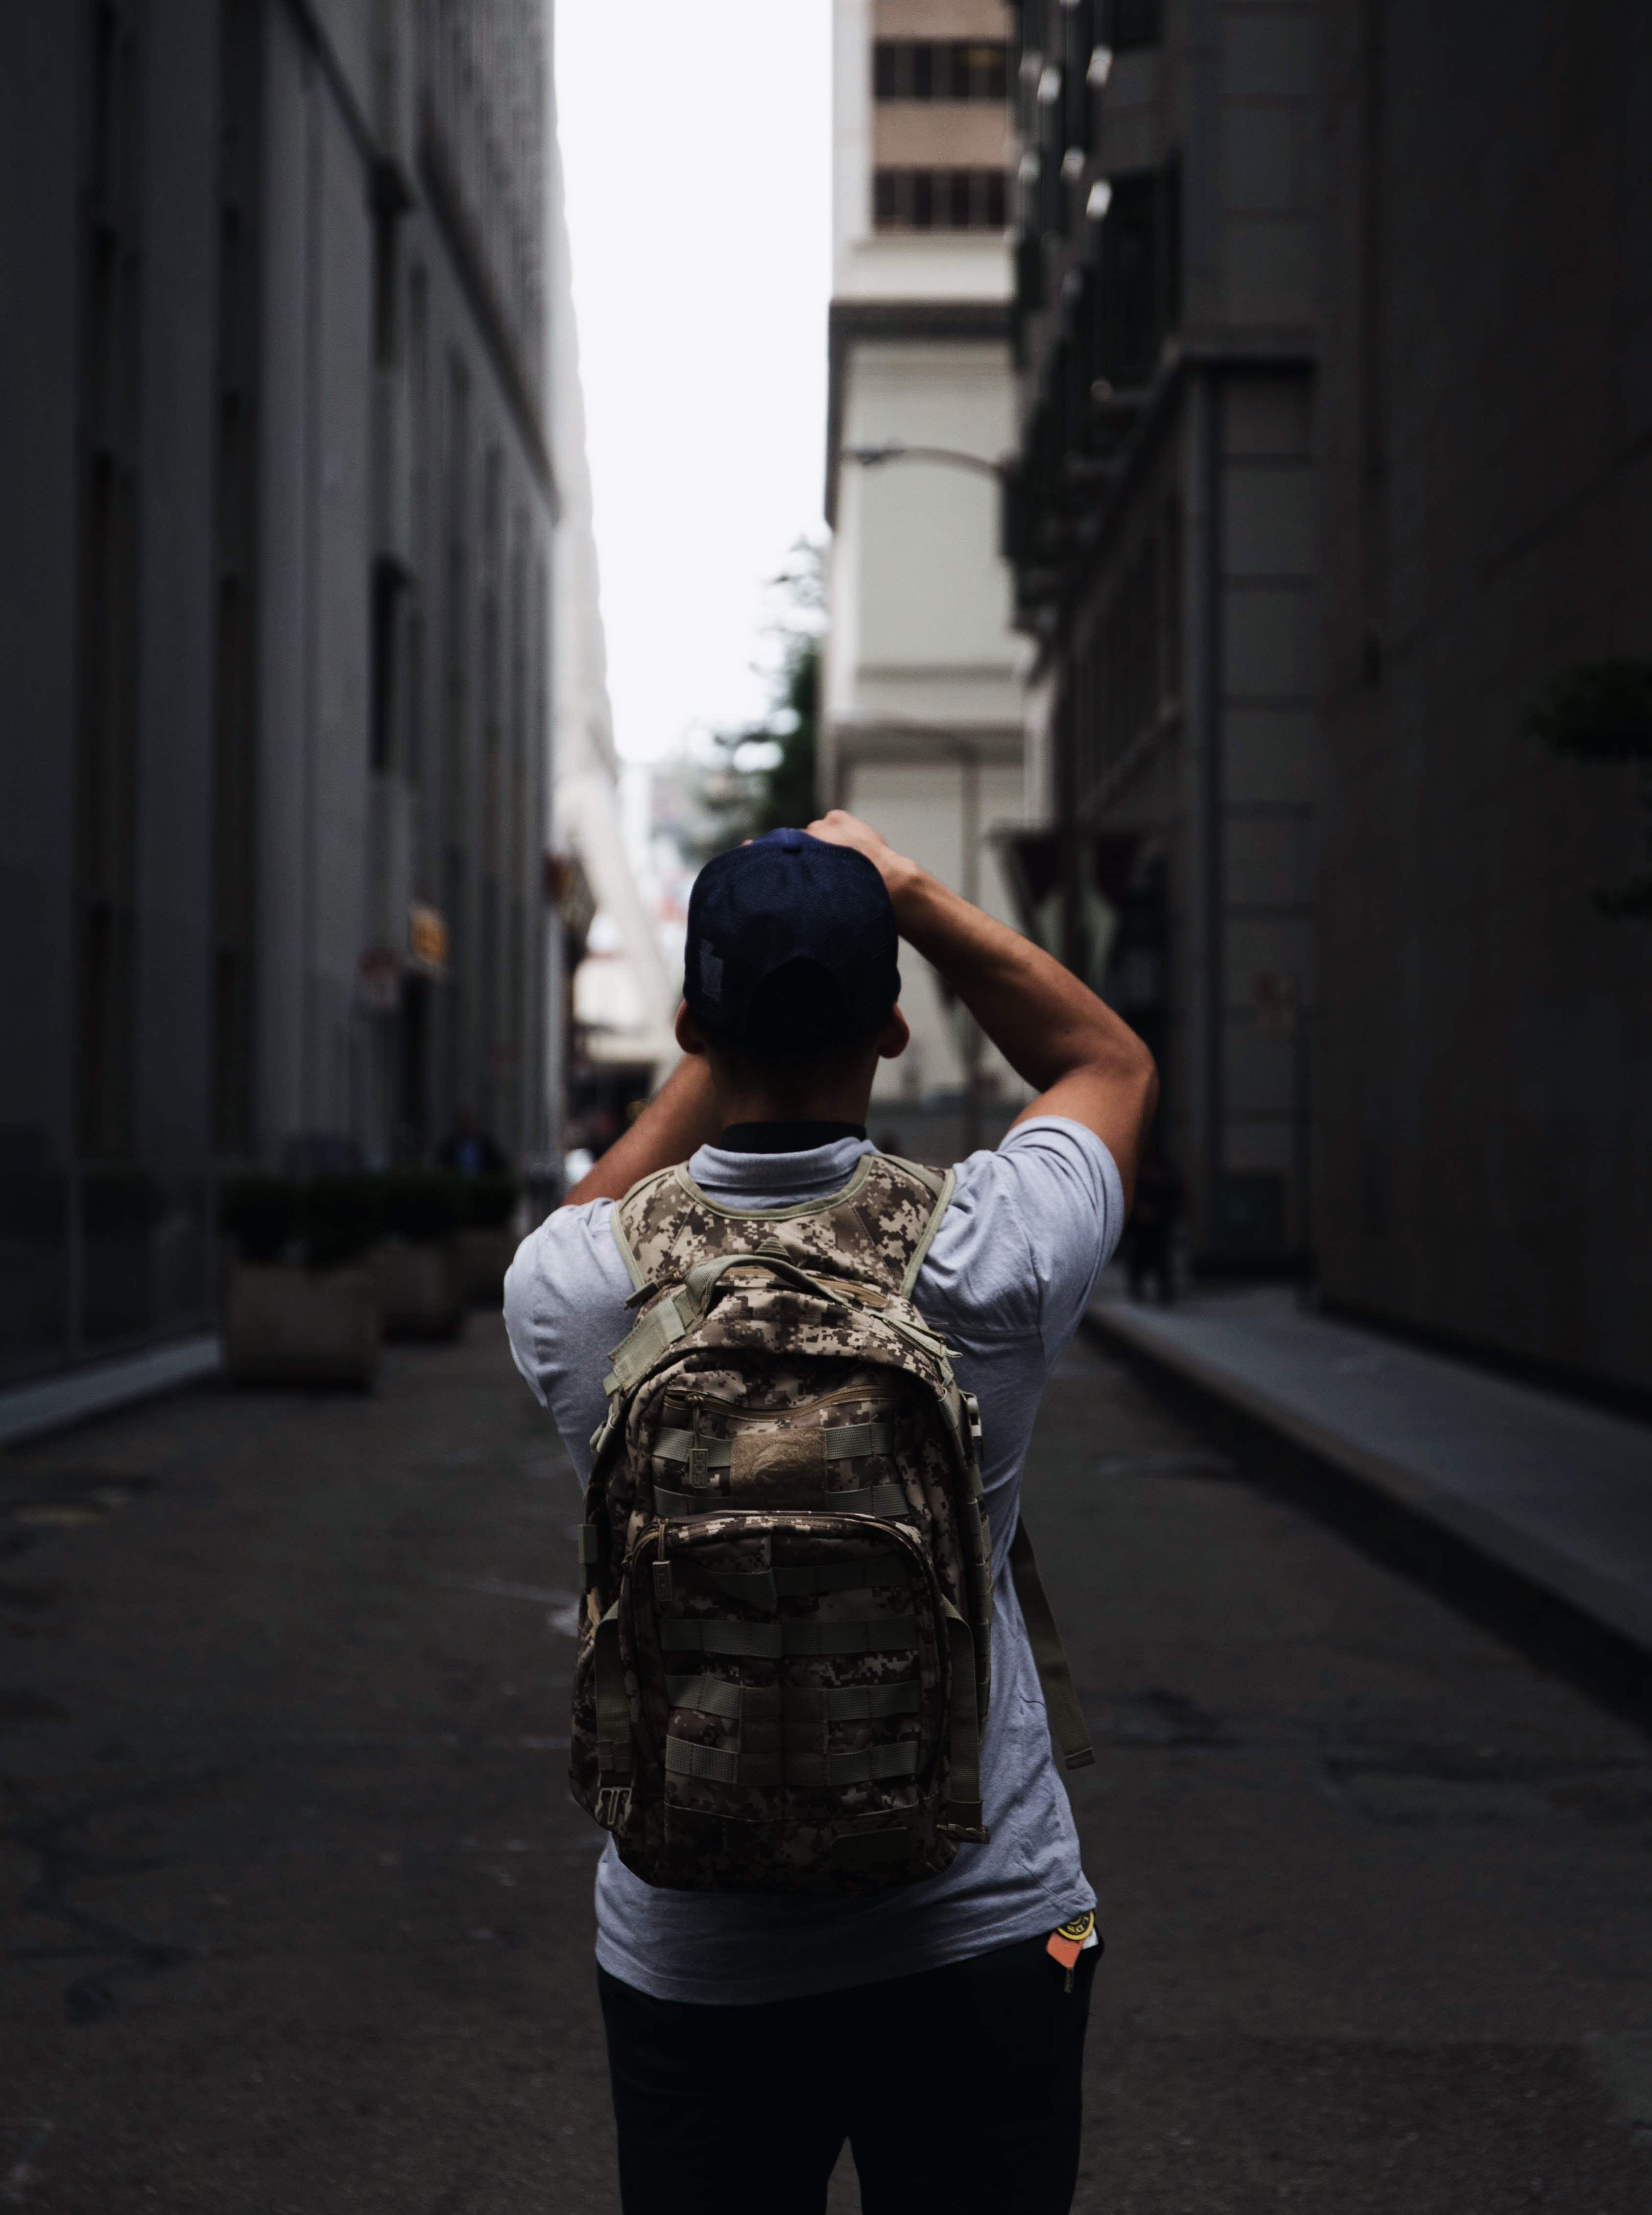 A person in a backpack faces away, pointing a camera down an alleyway